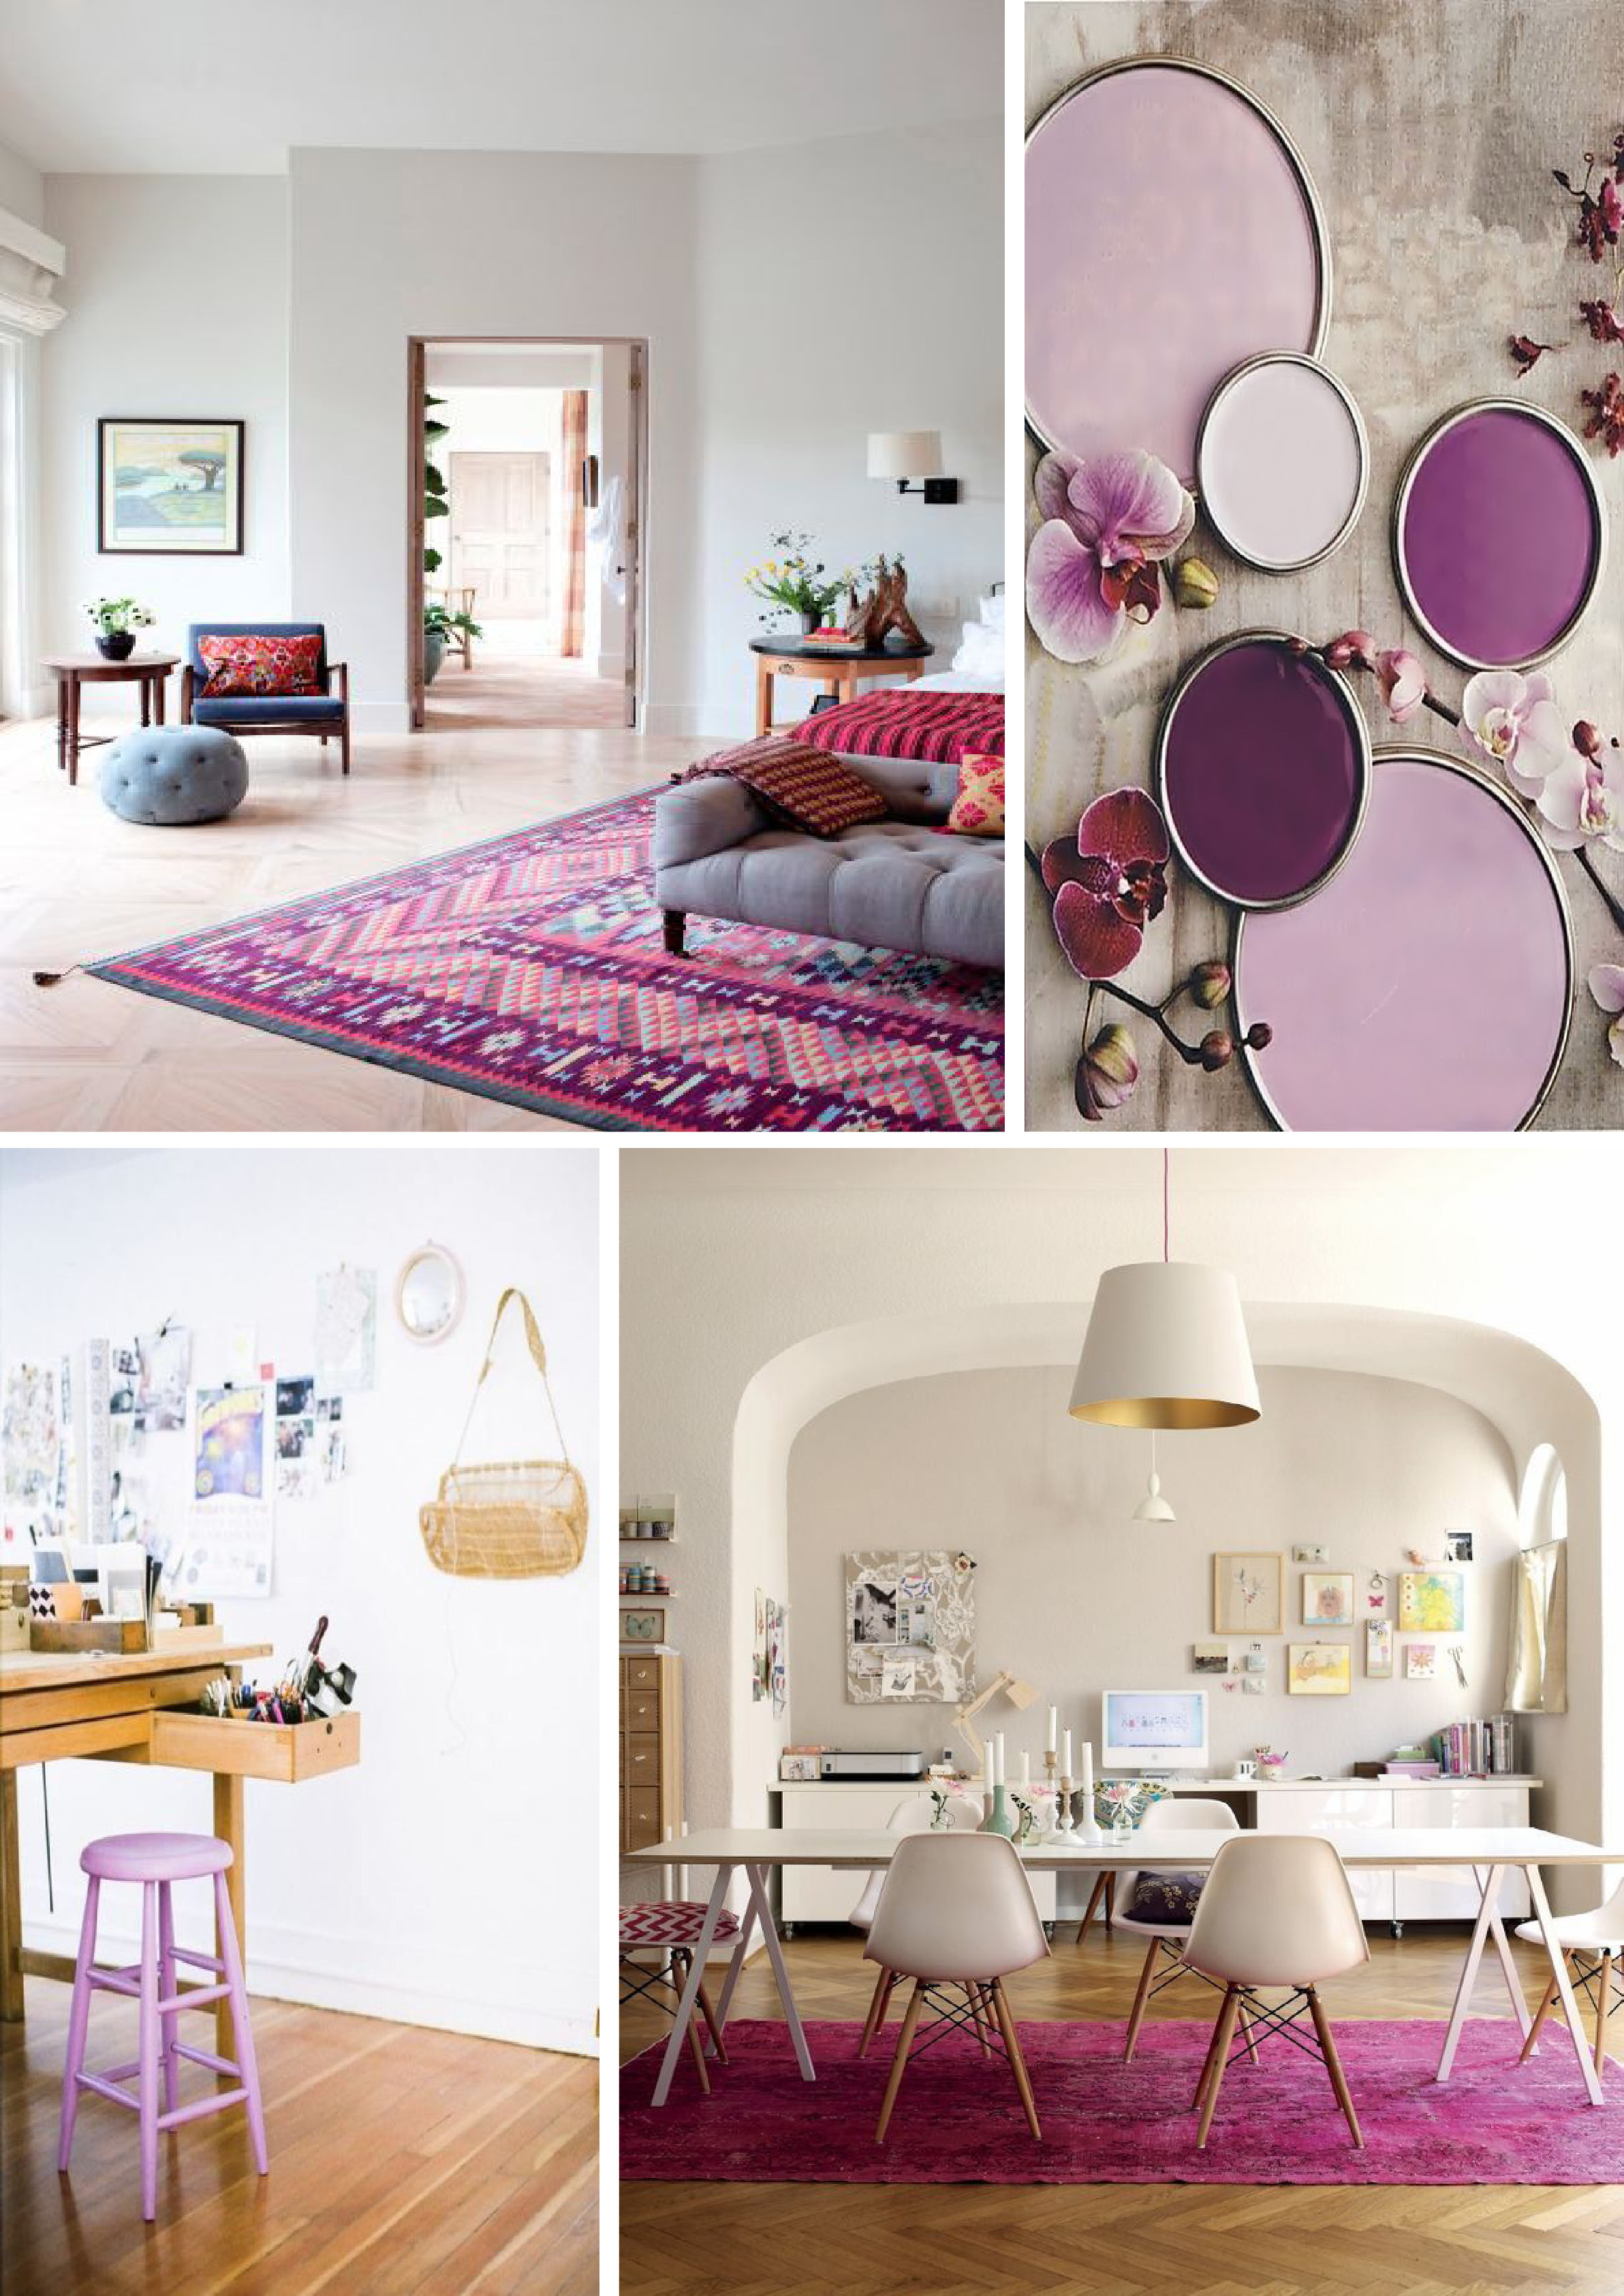 Radiant Orchid pantone 2014